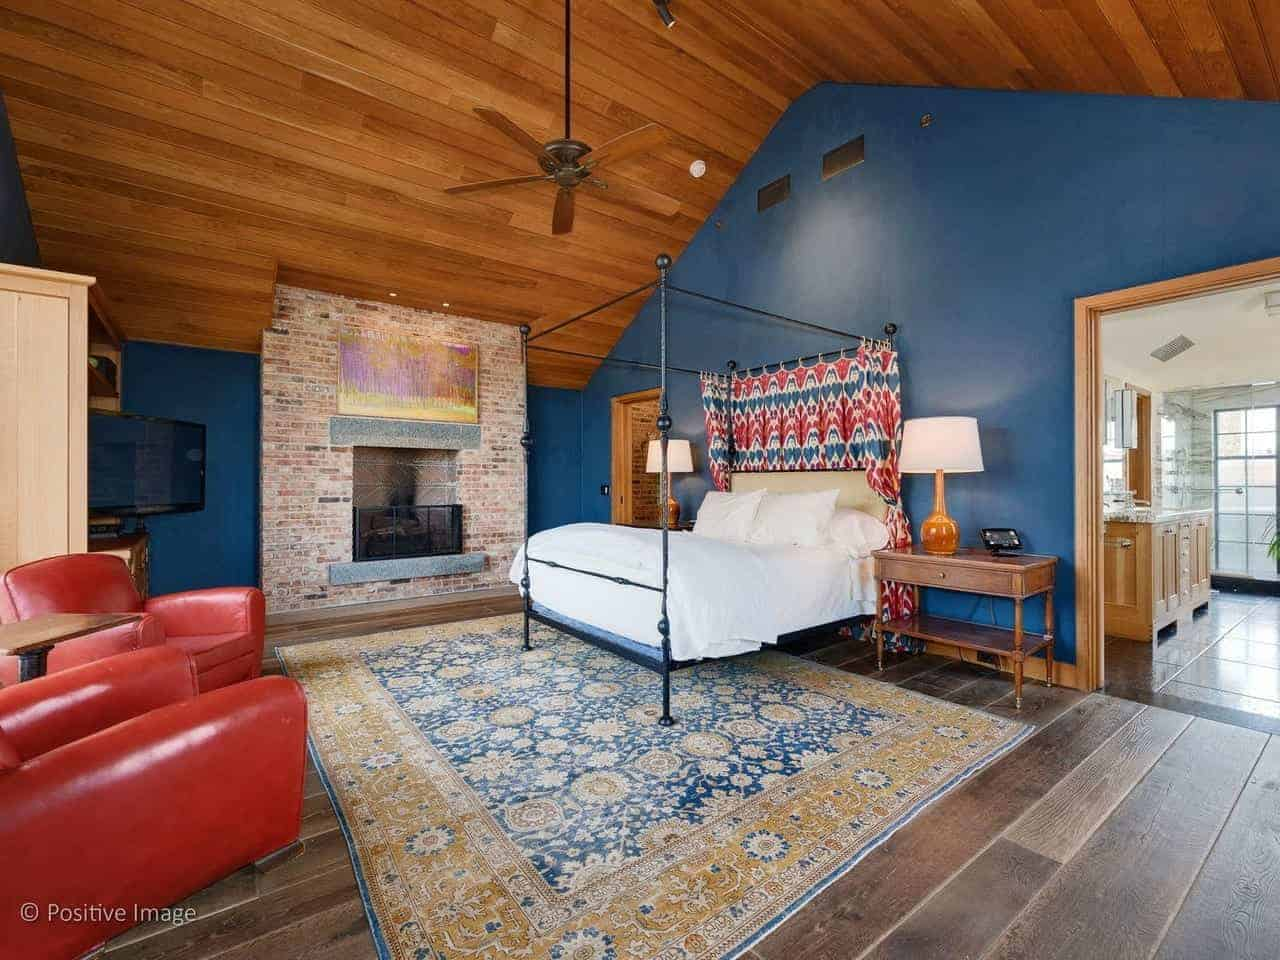 This industrial-style primary bedroom has the warm embrace of a traditional fireplace that is inlaid with red bricks. This stands out against the blue walls but complements the wooden cathedral ceiling that has a ceiling fan over the four-poster bed.